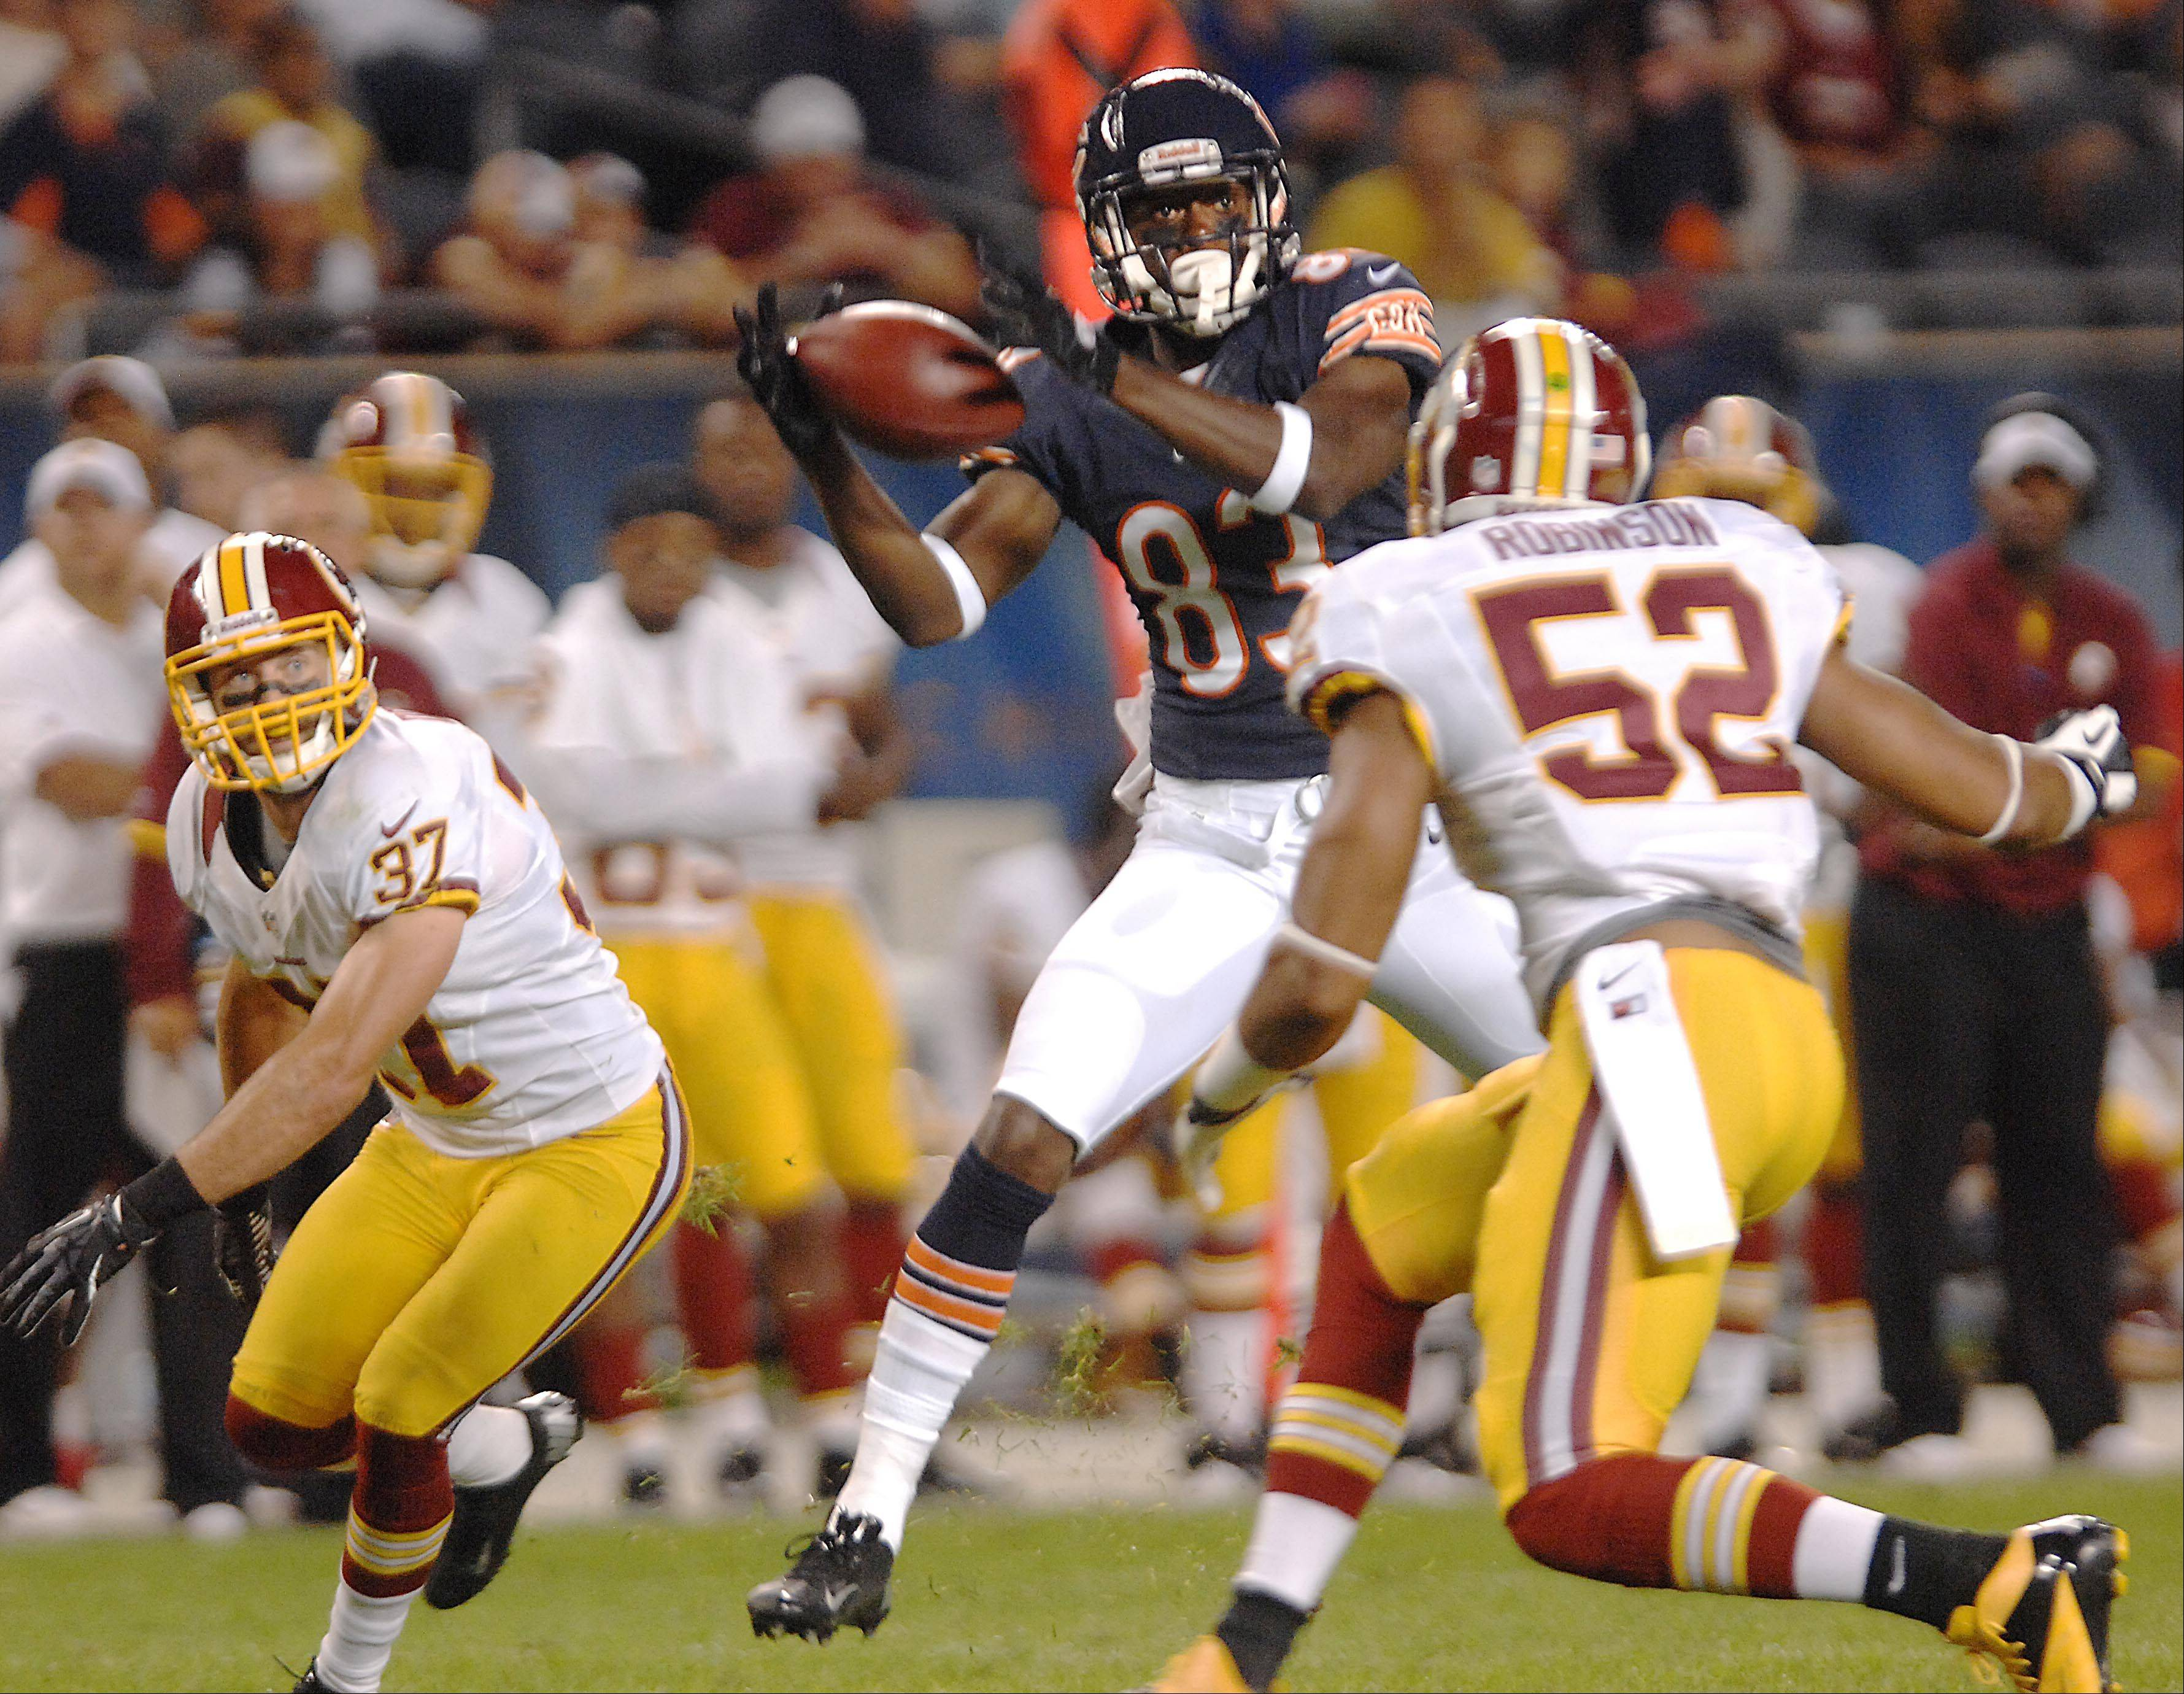 Bears wide receiver Chris Summers makes a catch that he would fumble seconds later Saturday against the Washington Redskins.